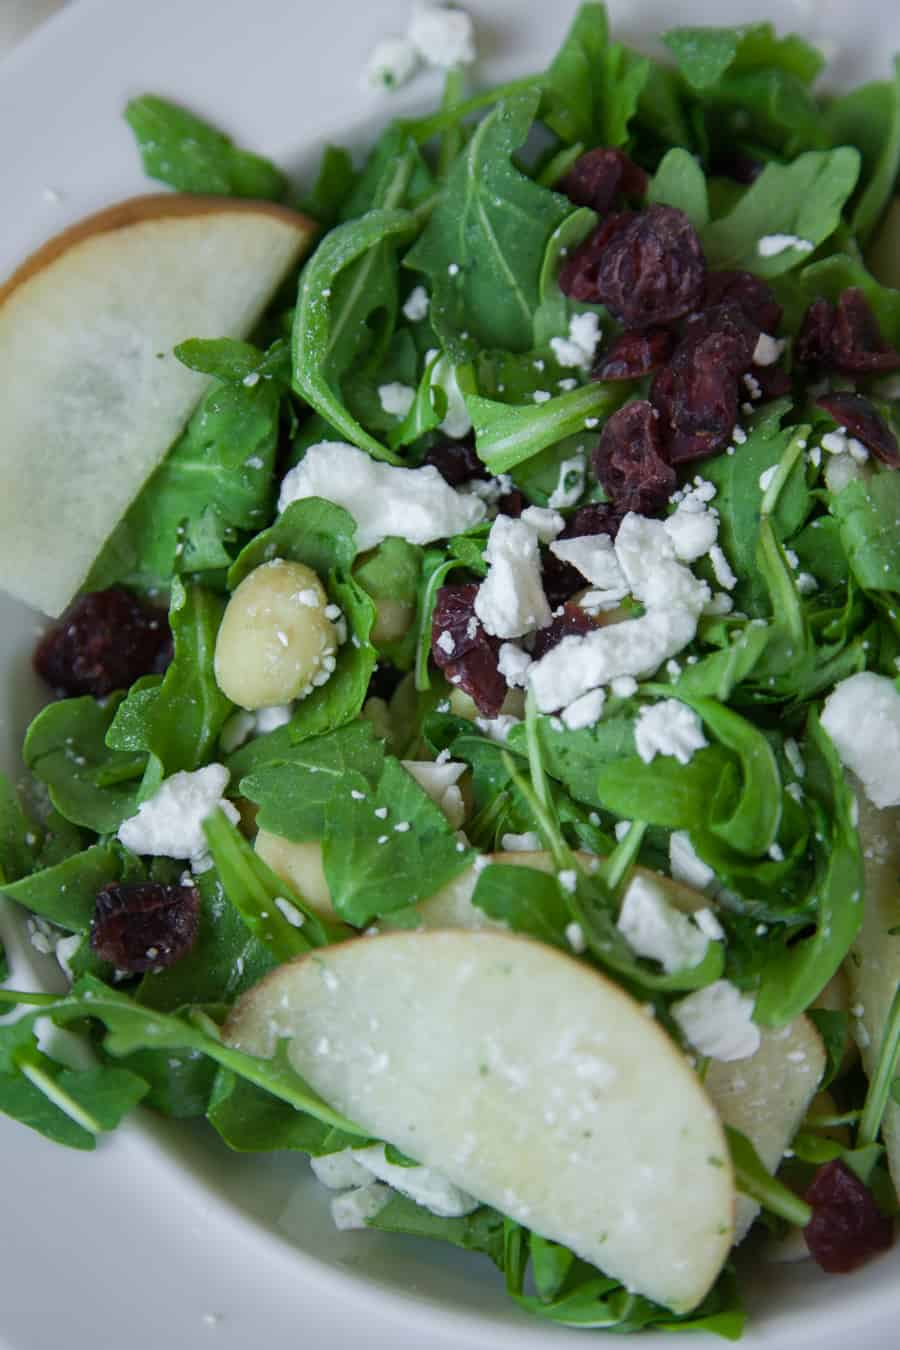 This light pear and pecan arugula salad is packed with sweet and salty flavors with a homemade vinaigrette dressing made with DRY Sparkling Cranberry! Add bosc pears, pecans, cranberries and goat cheese to a bed of arugula salad.